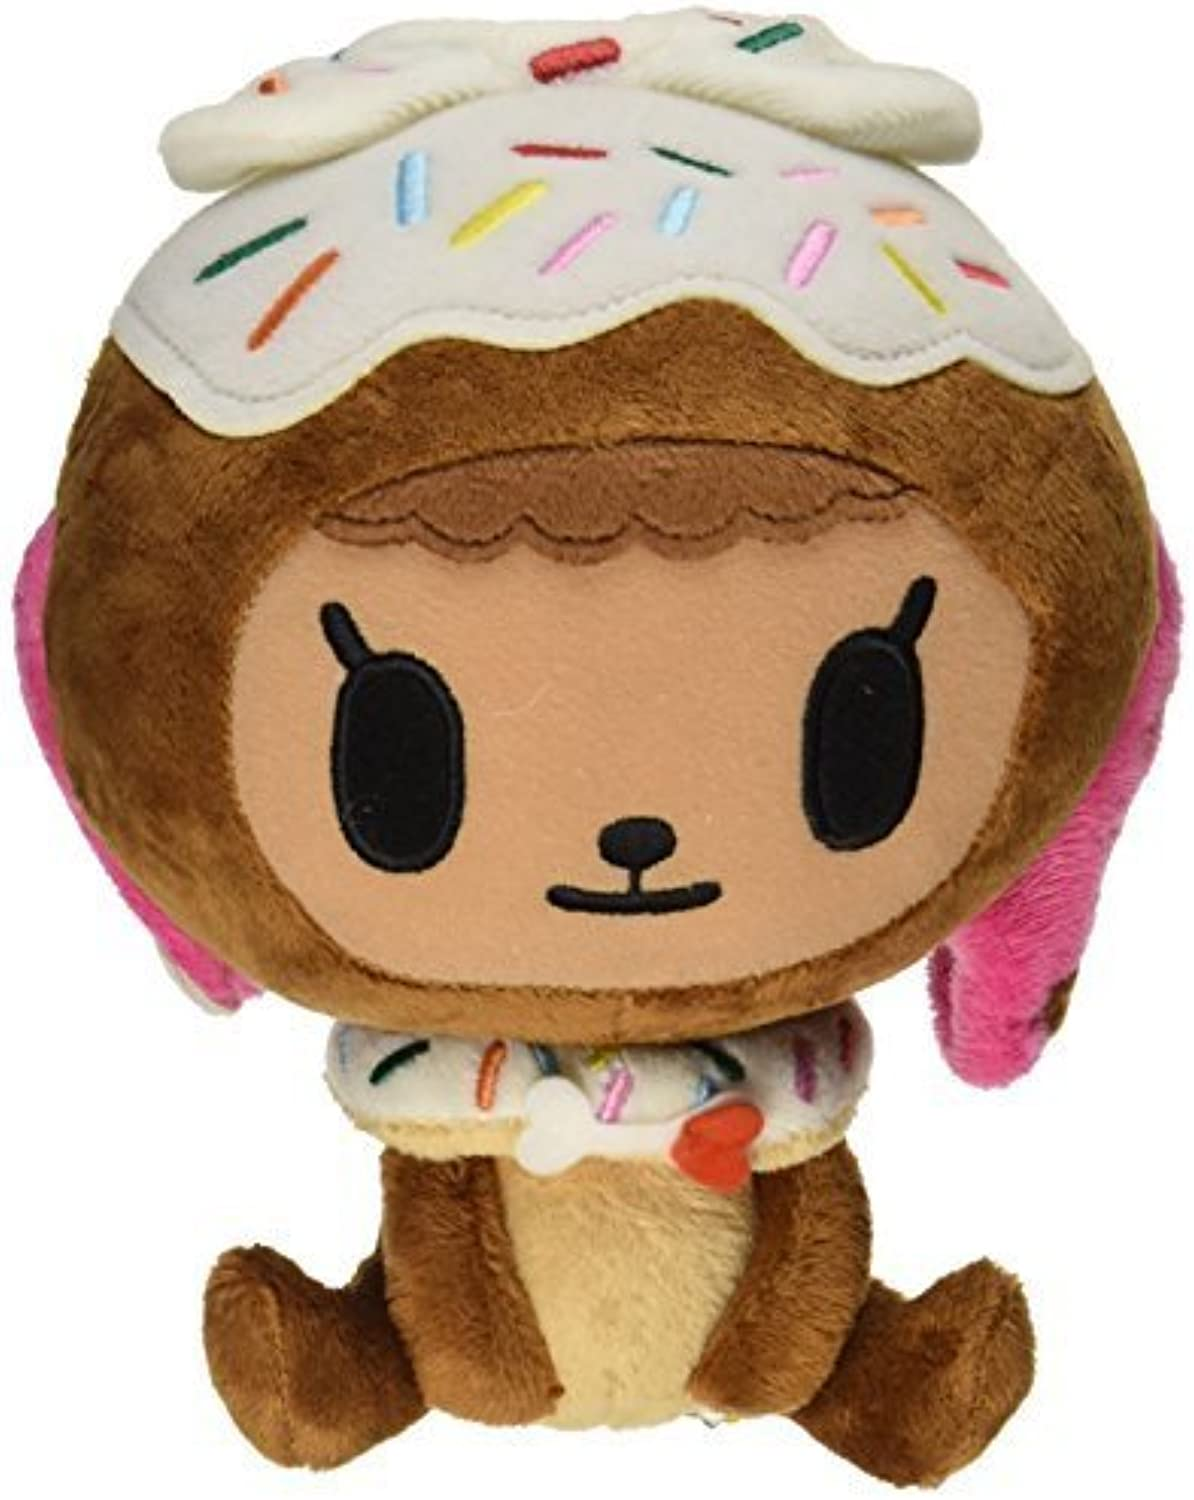 Tokidoki Donutina Plush Toy by Tokidoki